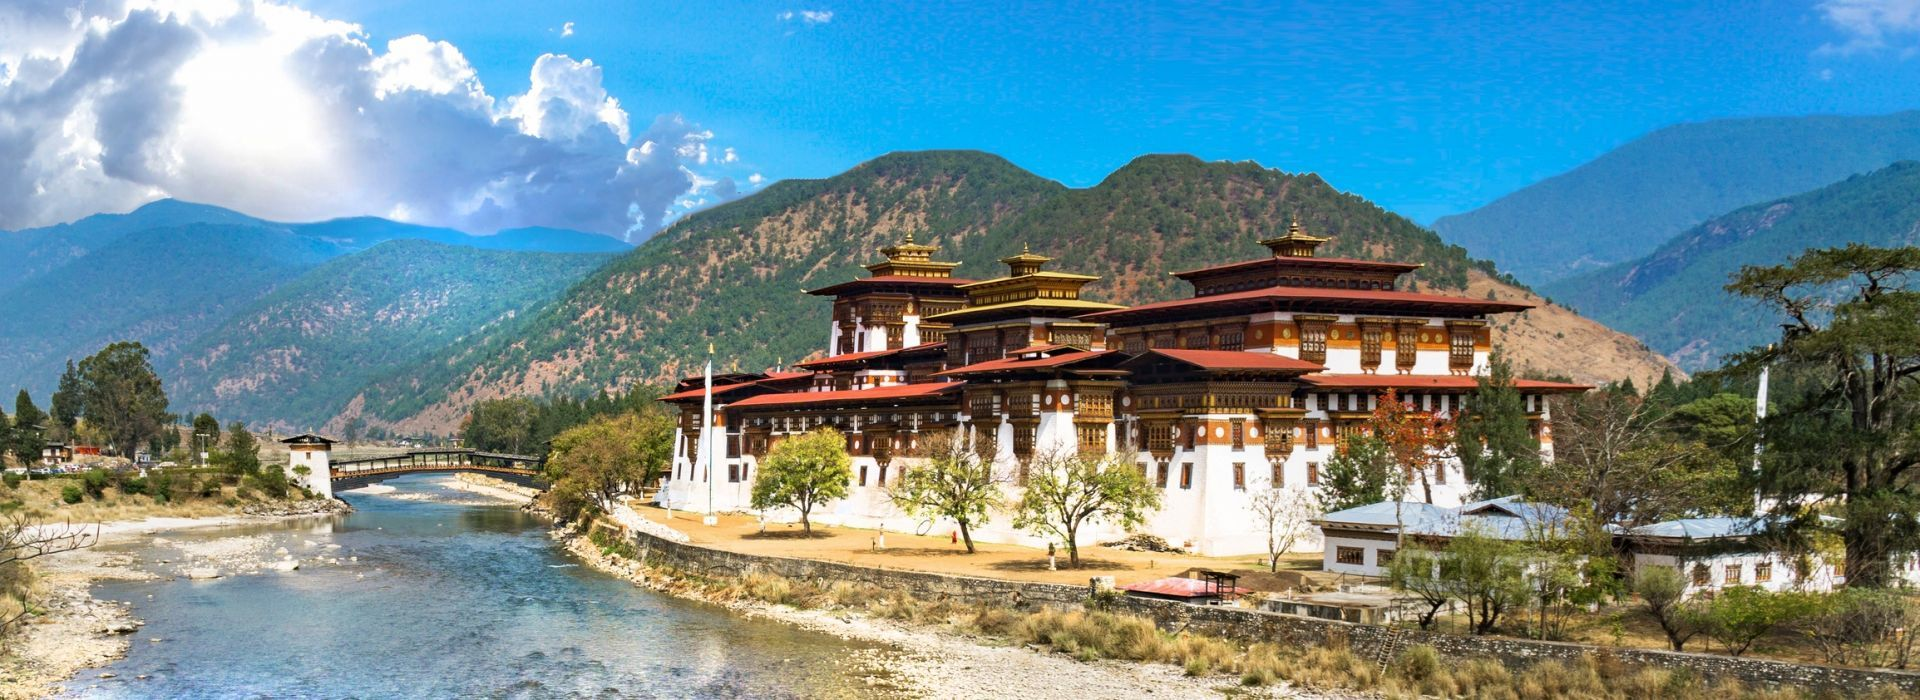 Special interests and hobbies Tours in Bhutan